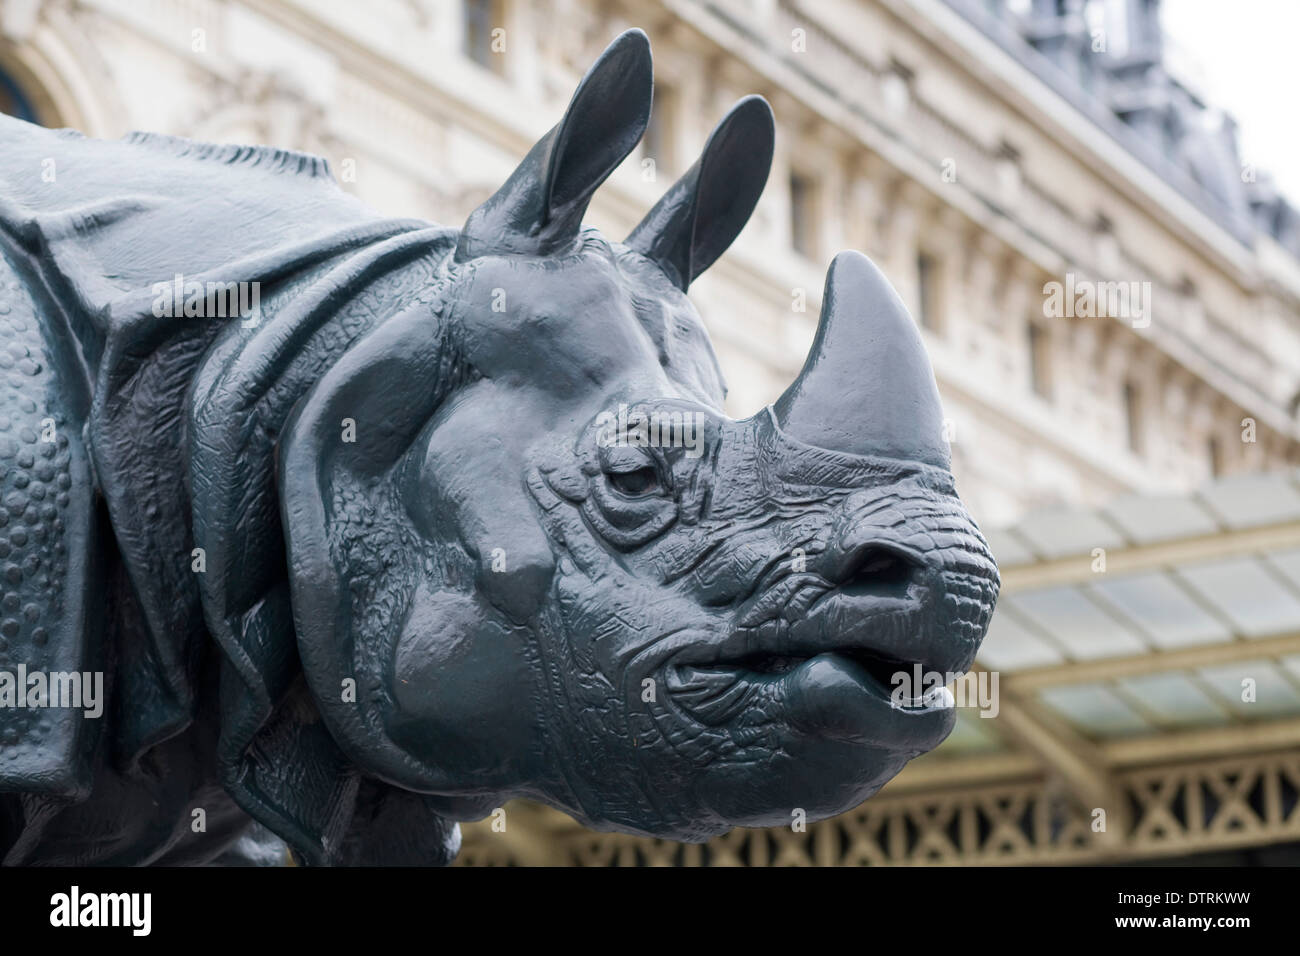 Rhinoceros statue outside the Musee d'Orsay, Paris, France - Stock Image